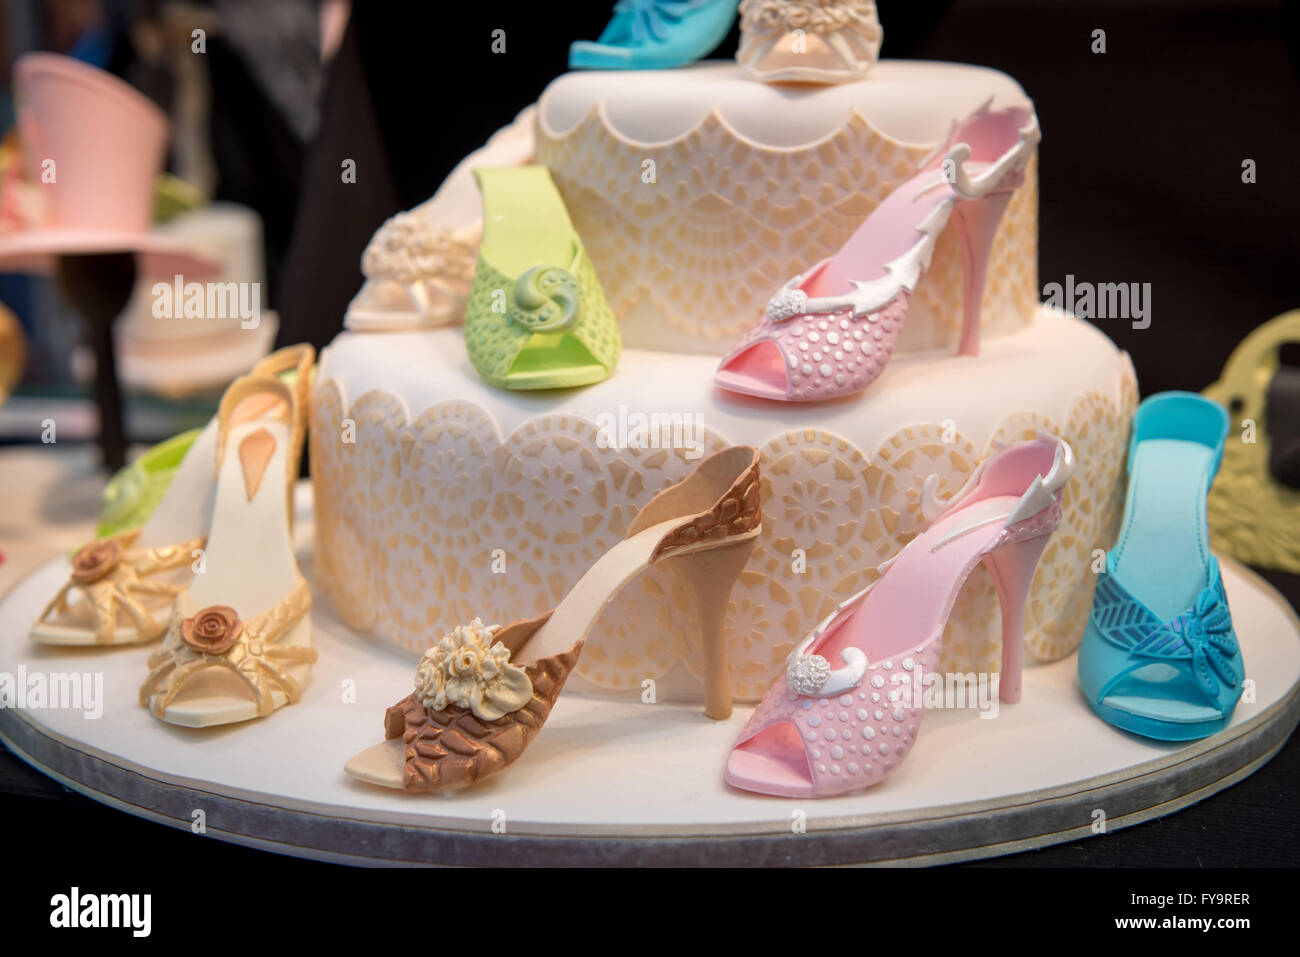 Edible High Heels Shoes Birthday Cake Decor At Cake